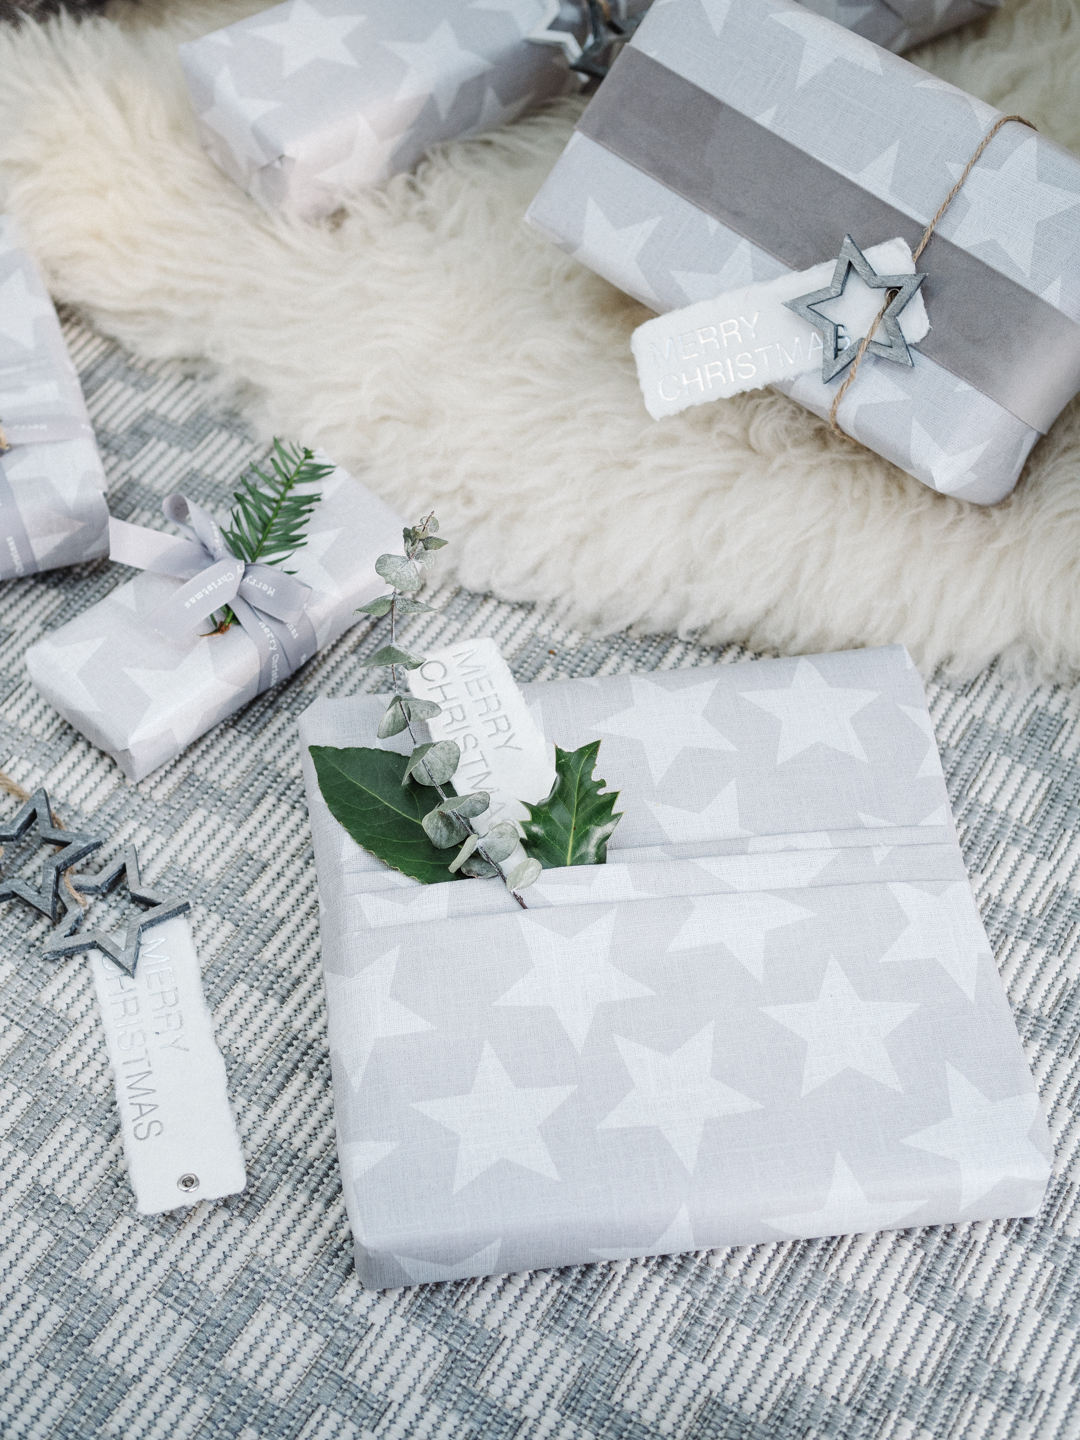 5 ways to elevate your Christmas gift wrapping this year